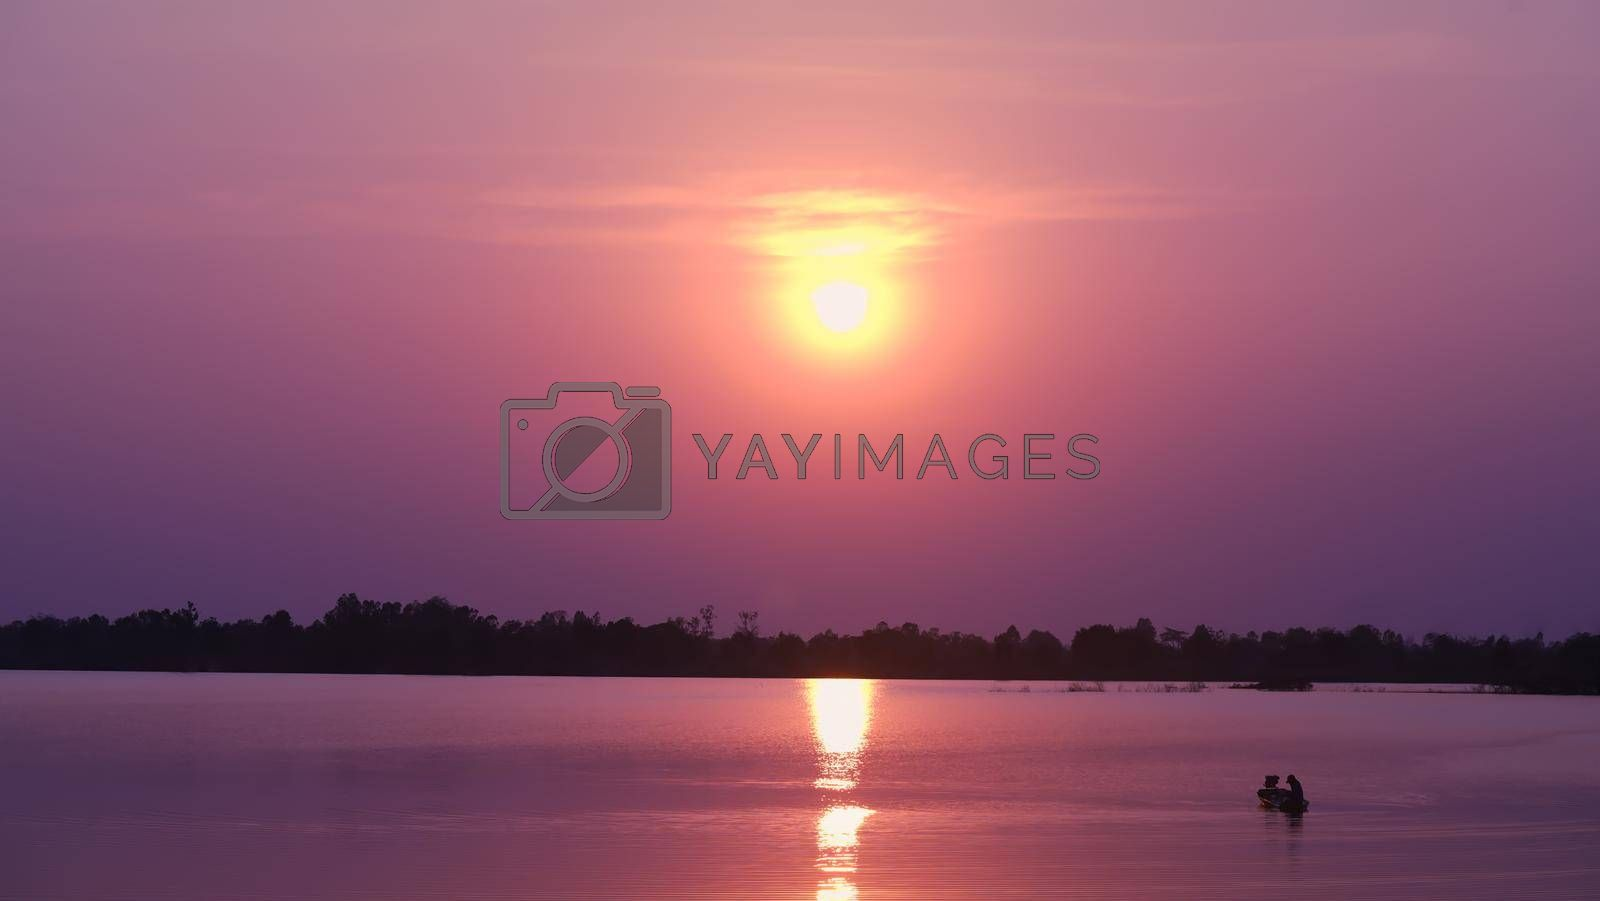 The scenery along the lake has an orange sky and a beautiful sunset.